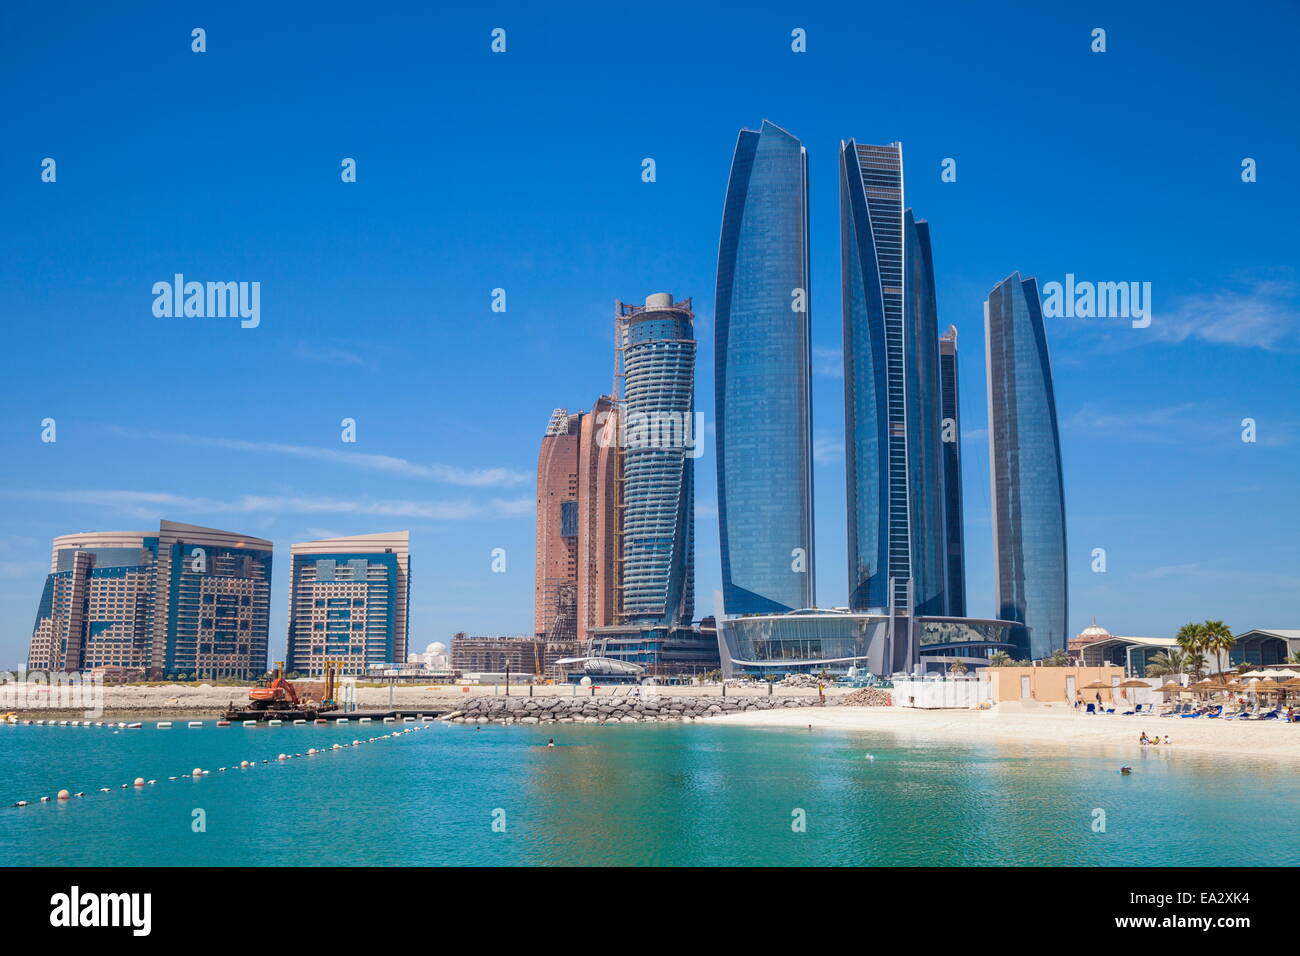 Etihad Towers, Abu Dhabi, Émirats arabes unis, Moyen Orient Photo Stock